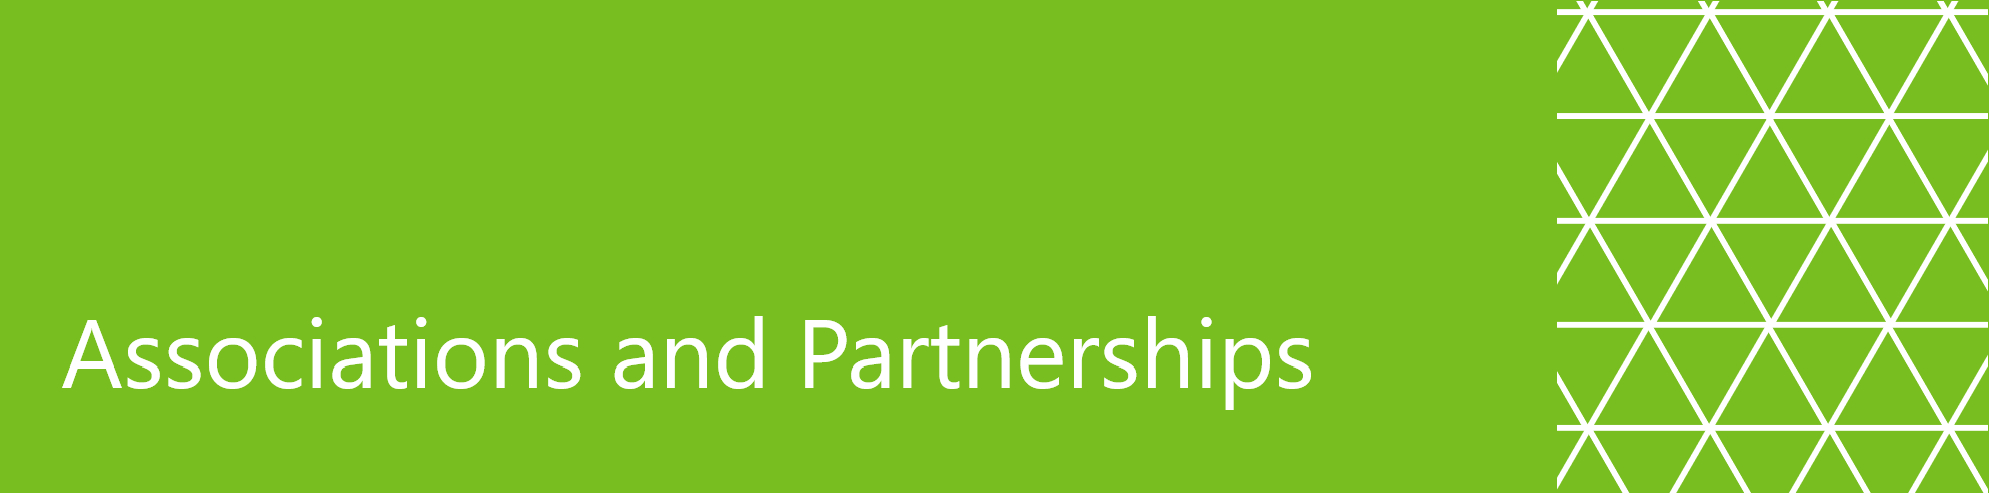 Associations and Partnerships